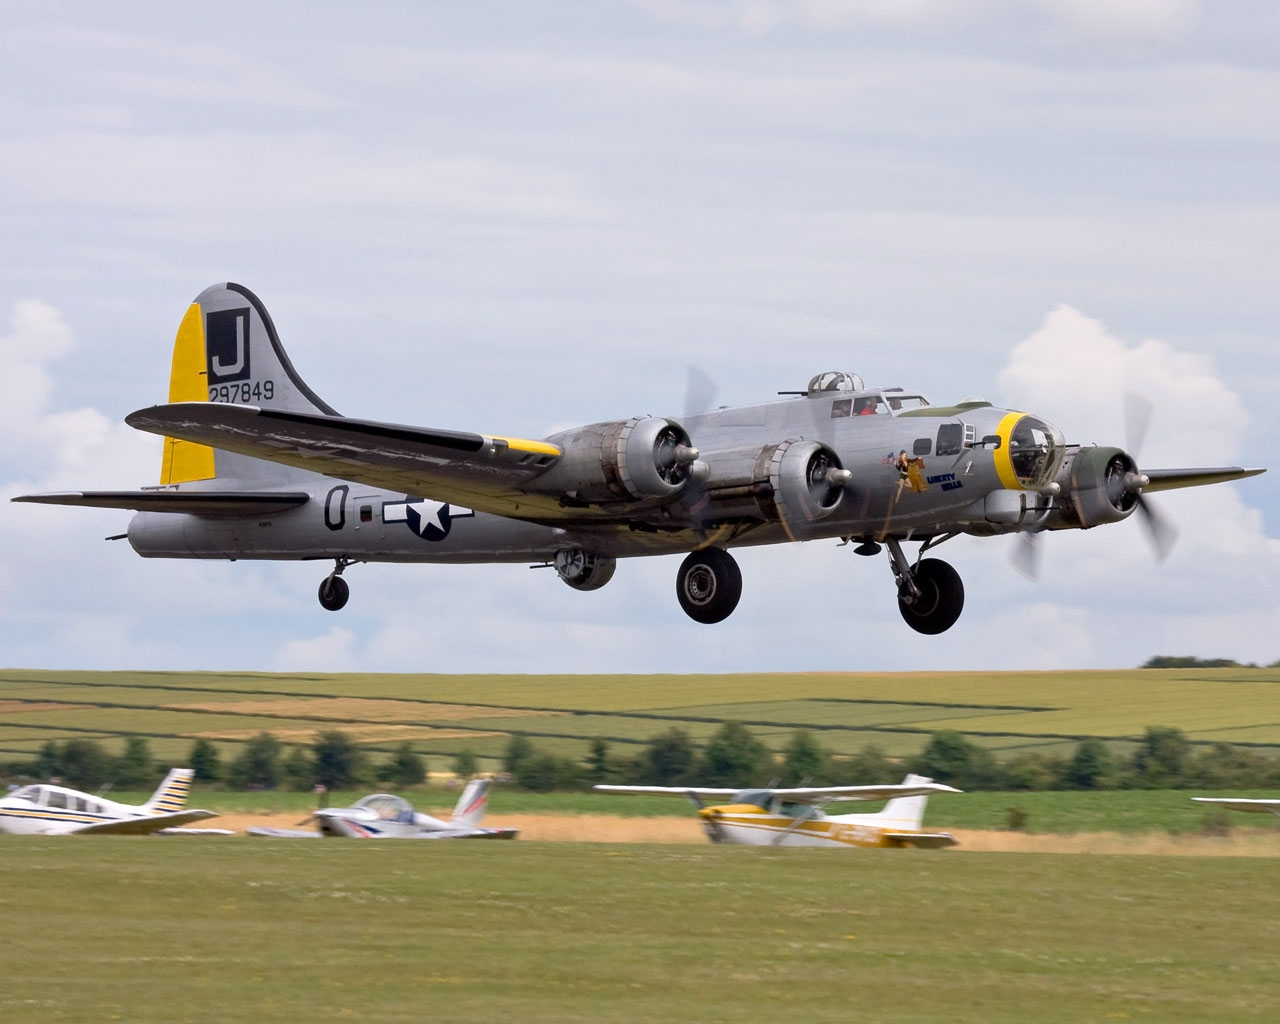 Free Download 1280x1024 Boeing B17 Flying Fortress Wallpaper